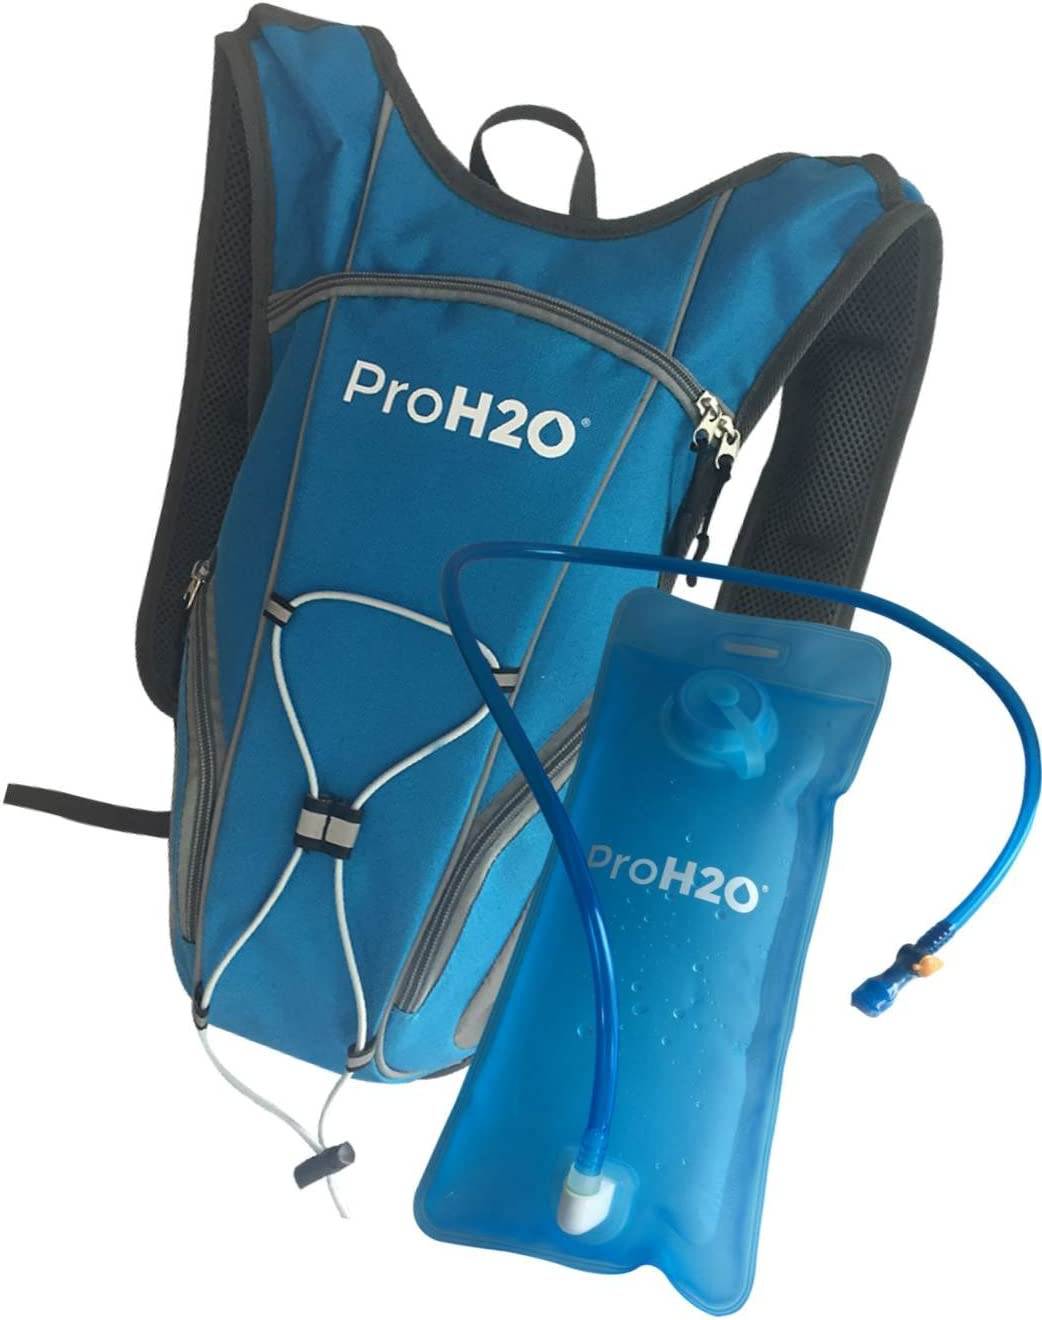 ProH2O 2L Hydration Backpack for Running, Hiking, Cycling – Ergonomic Design Molds to Your Back and Provides Hydrating Liquids for Outdoor Activities Easy to Use Bite Valve, Non Leak Bladder